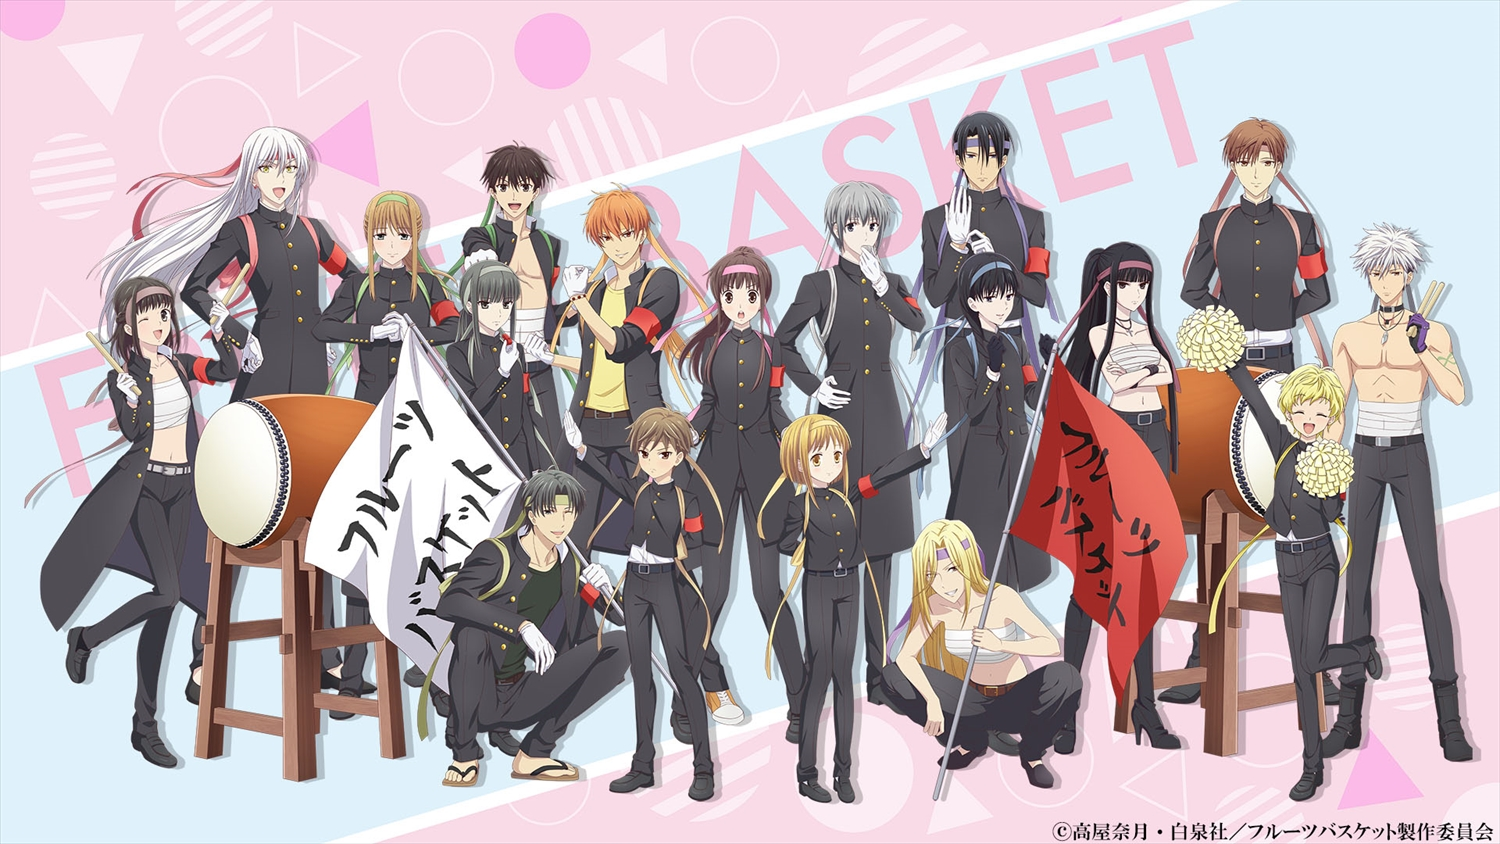 Fruits Basket cast gets their cheer on